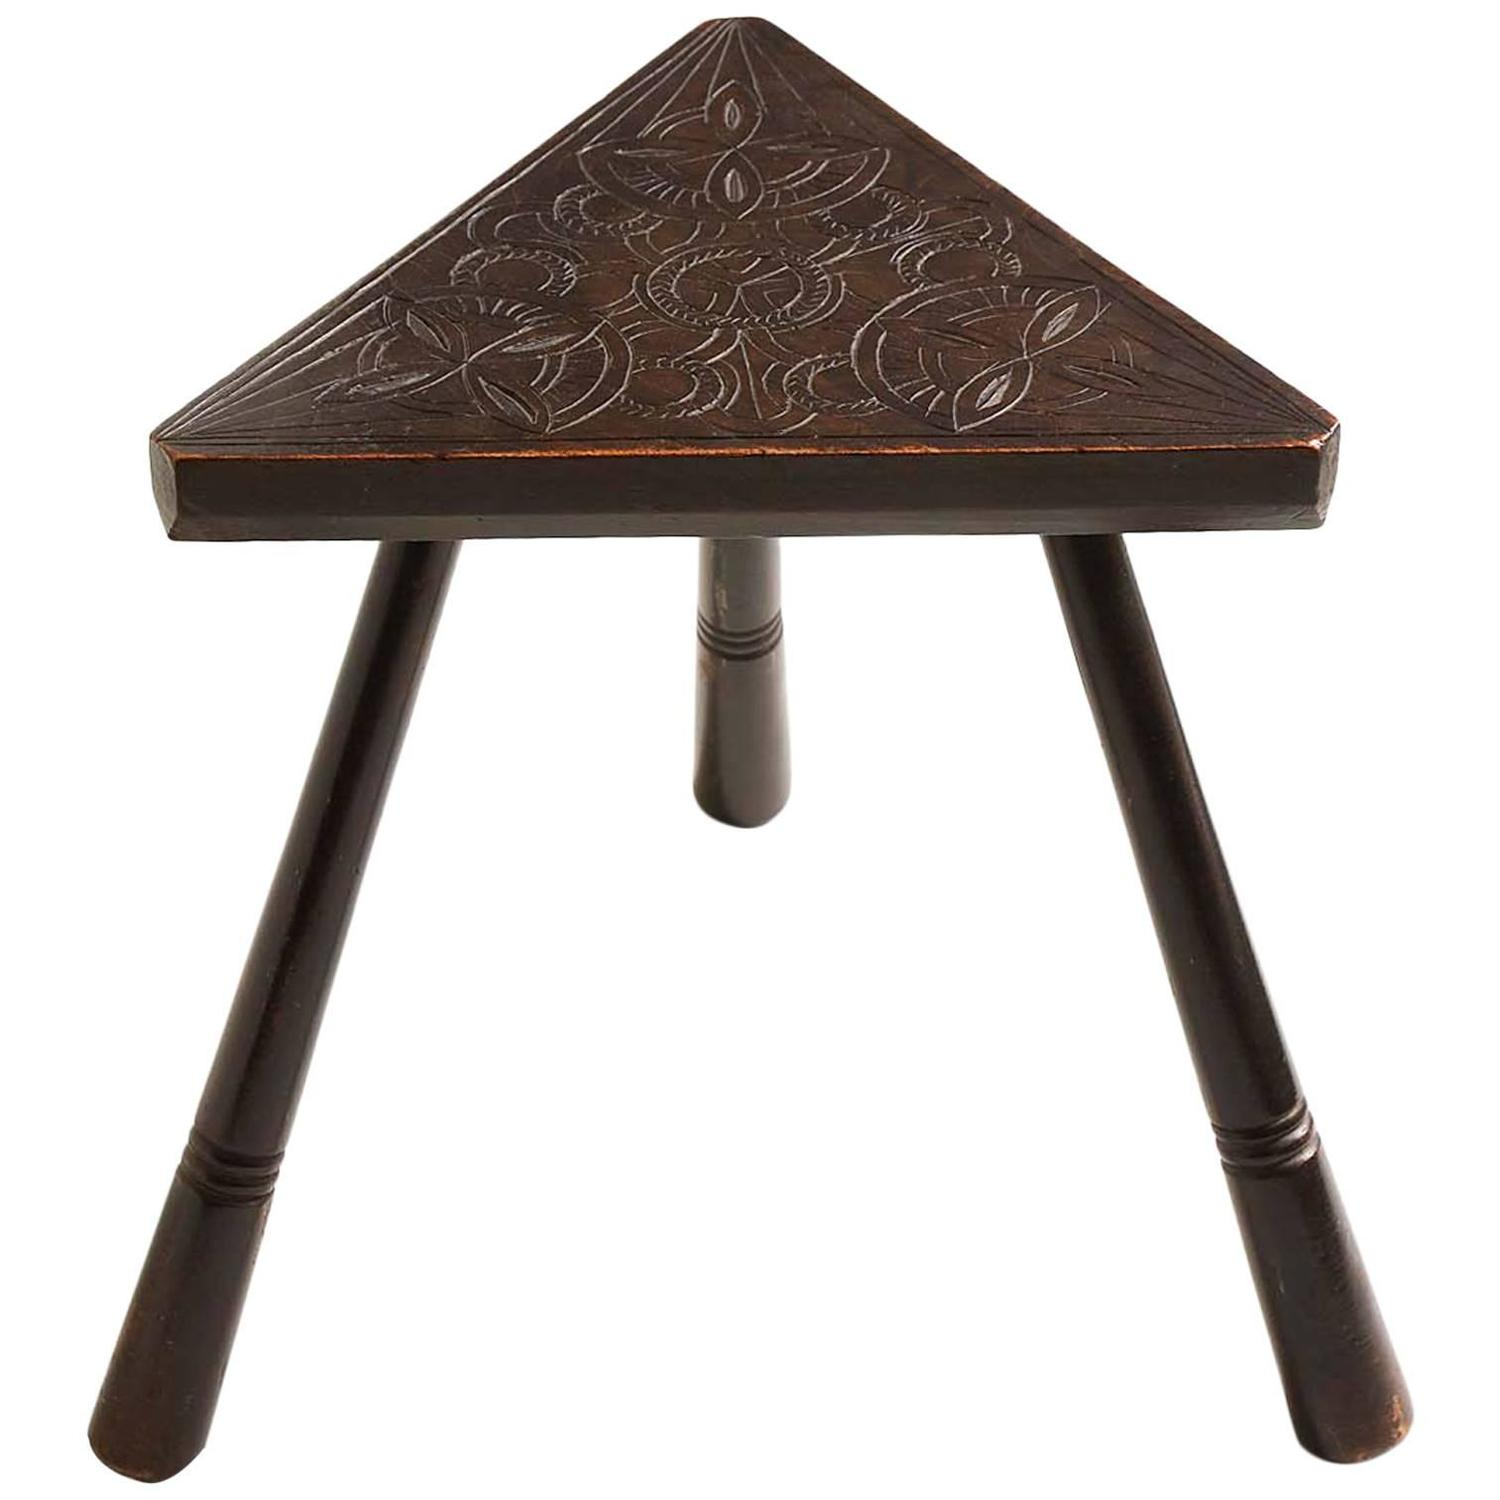 Irish Arts And Crafts Triangular Low Table For Sale At 1stdibs